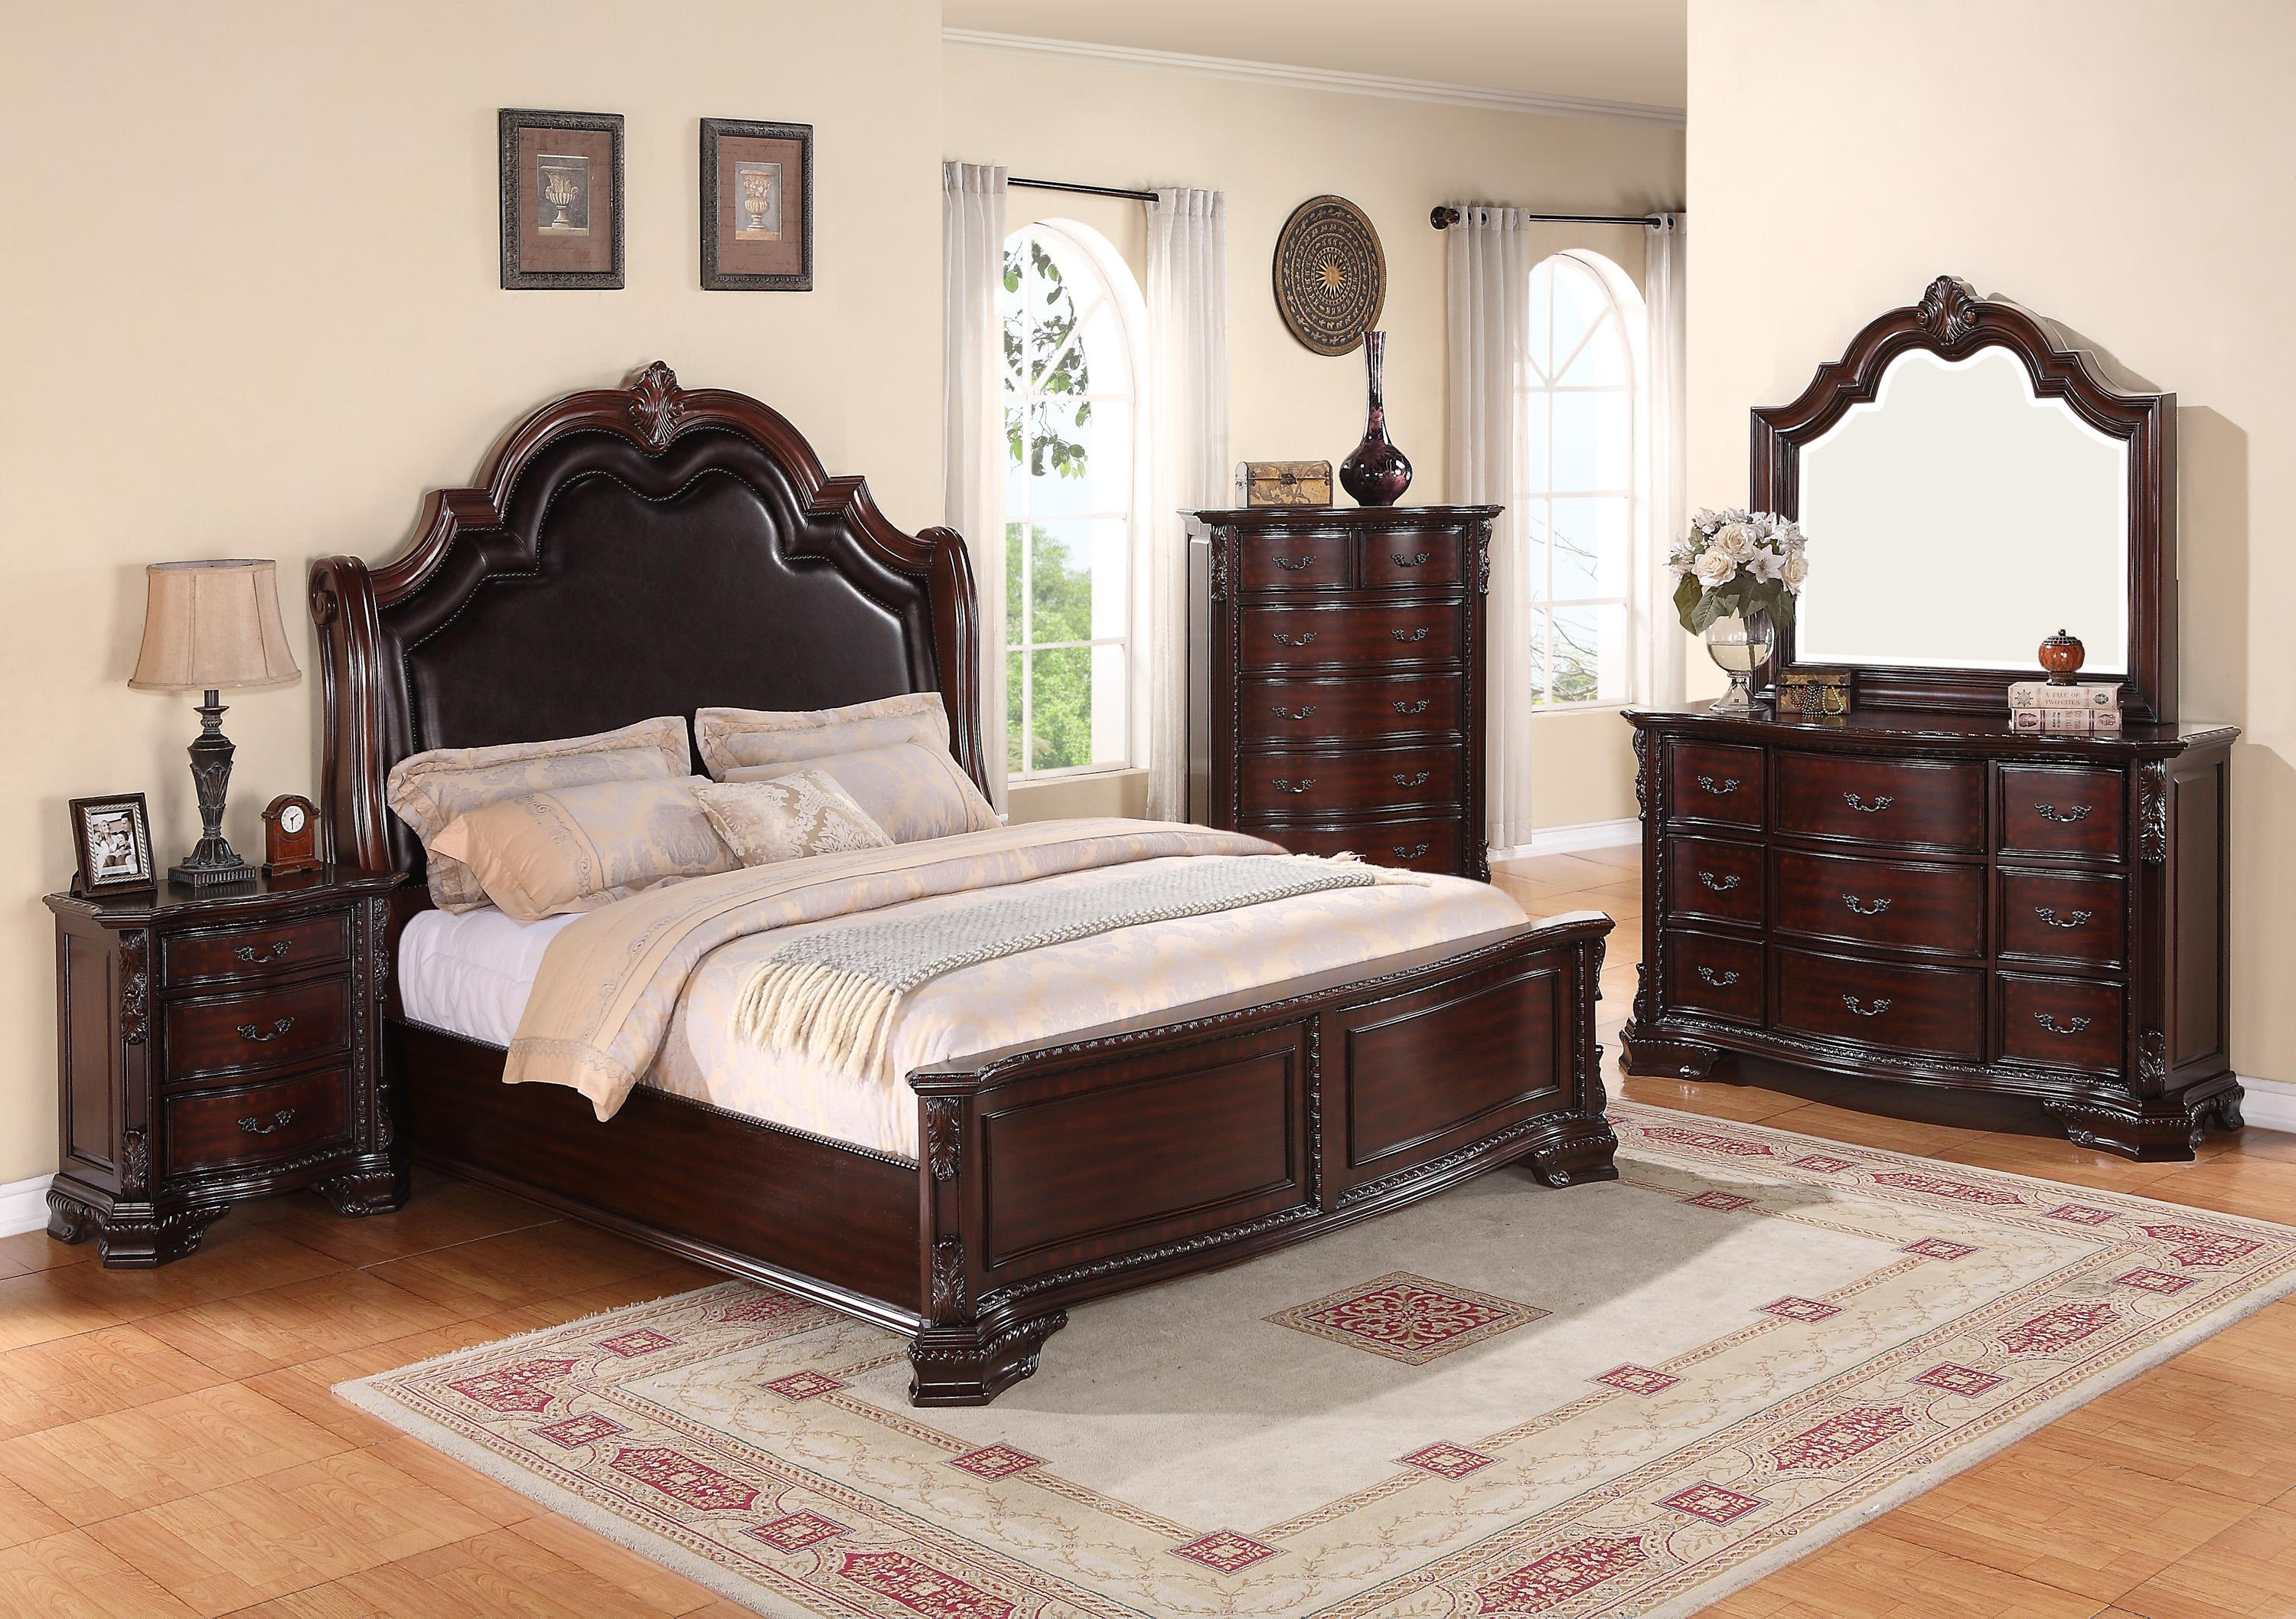 Crown Mark Sheffield King Bedroom Group - Item Number: B11 King Bedroom Group 1